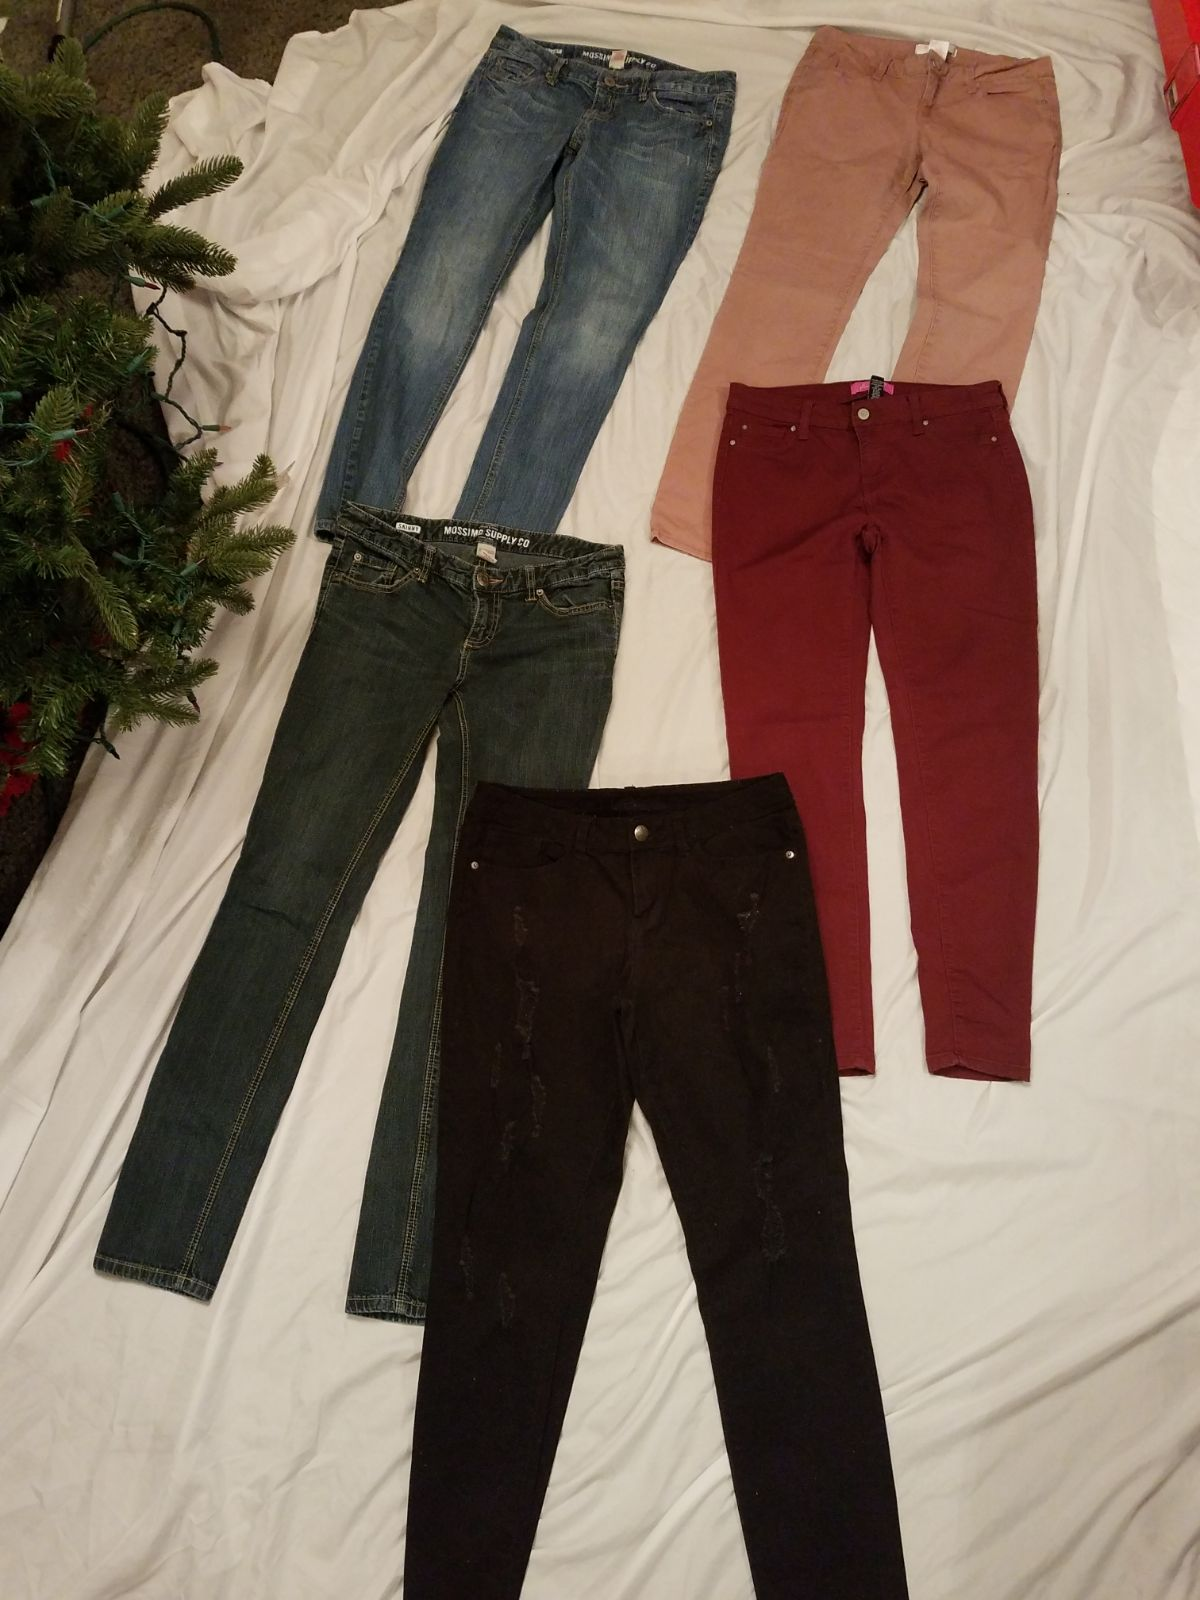 Junior girl's jeans size 9